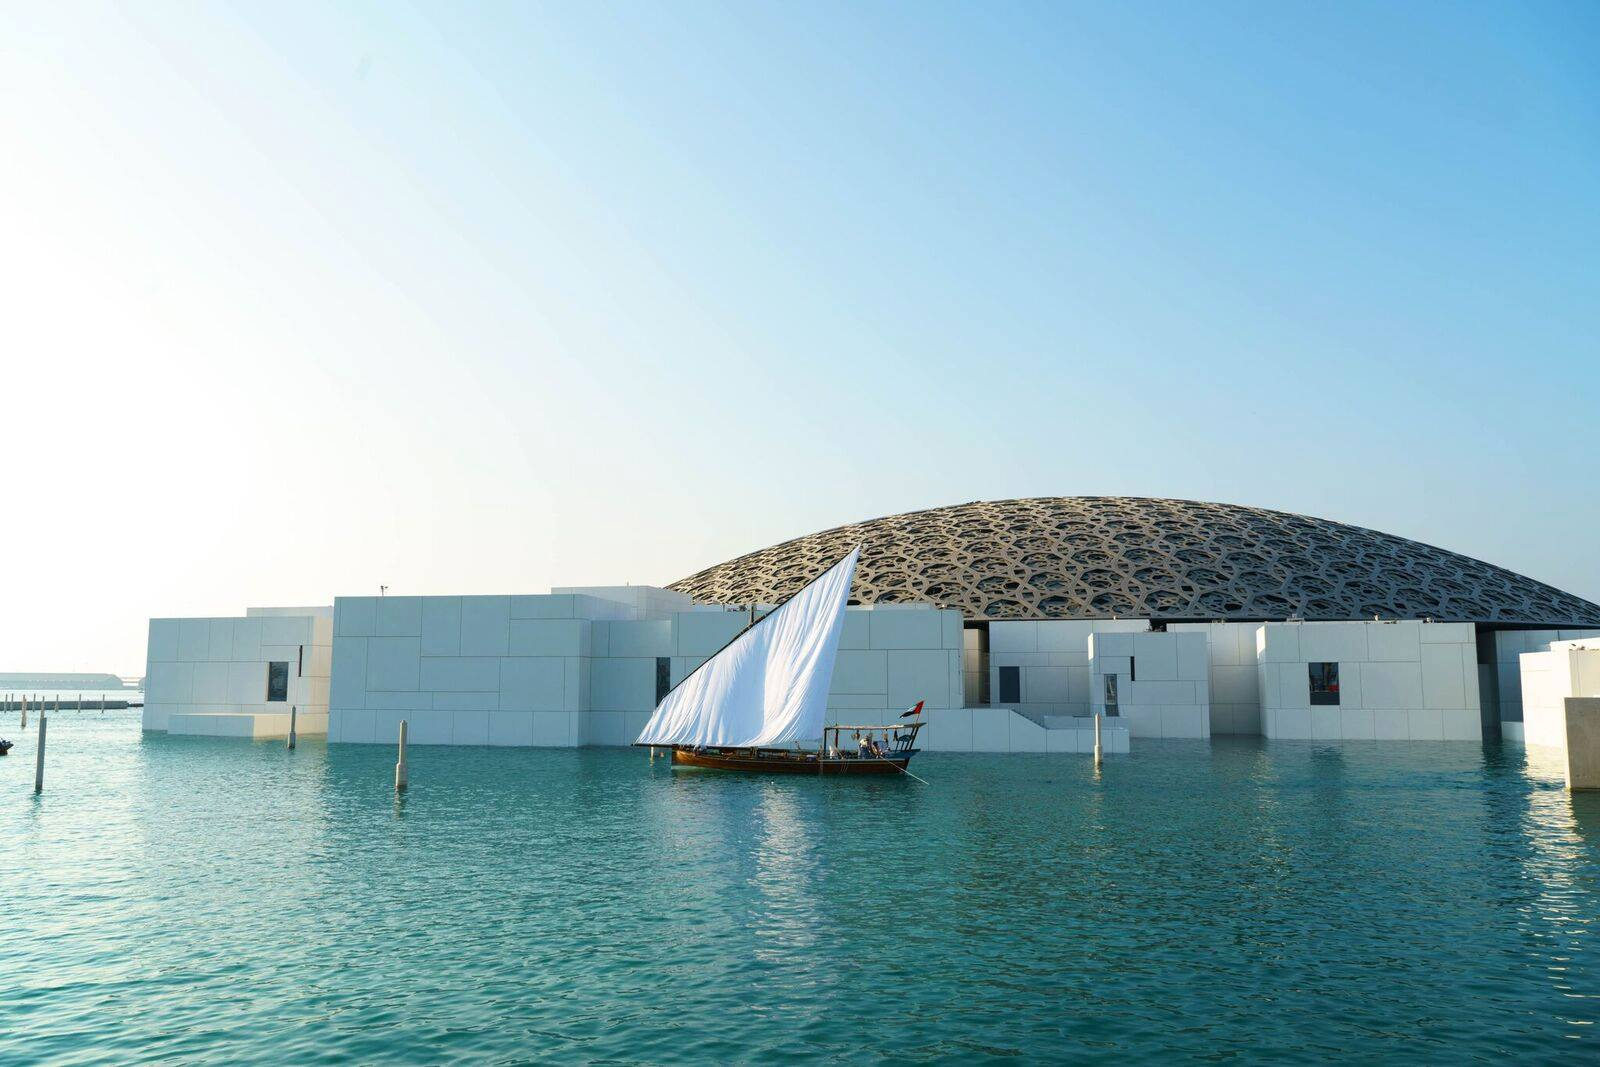 Abu Dhabi Attractions Tour with Louvre Abu Dhabi